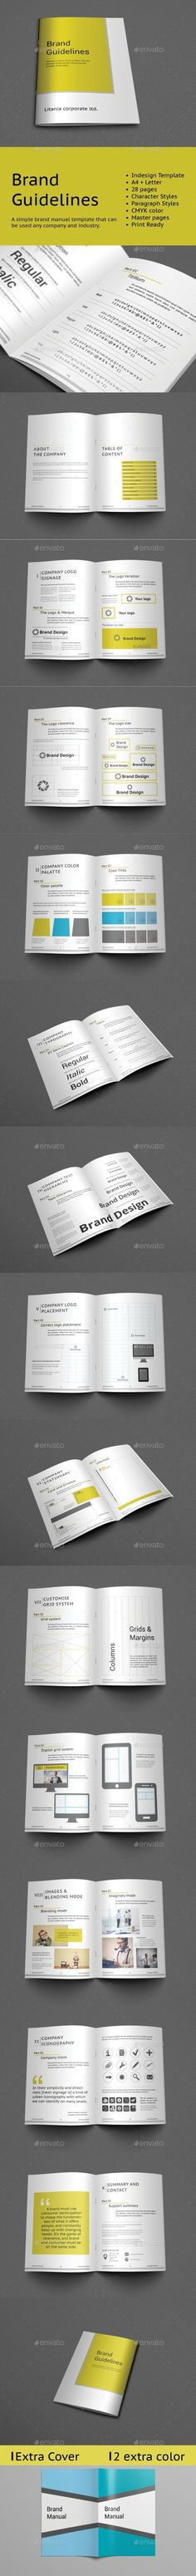 Professional & Clean Brand Manual Template InDesign INDD - 56 Pages ...